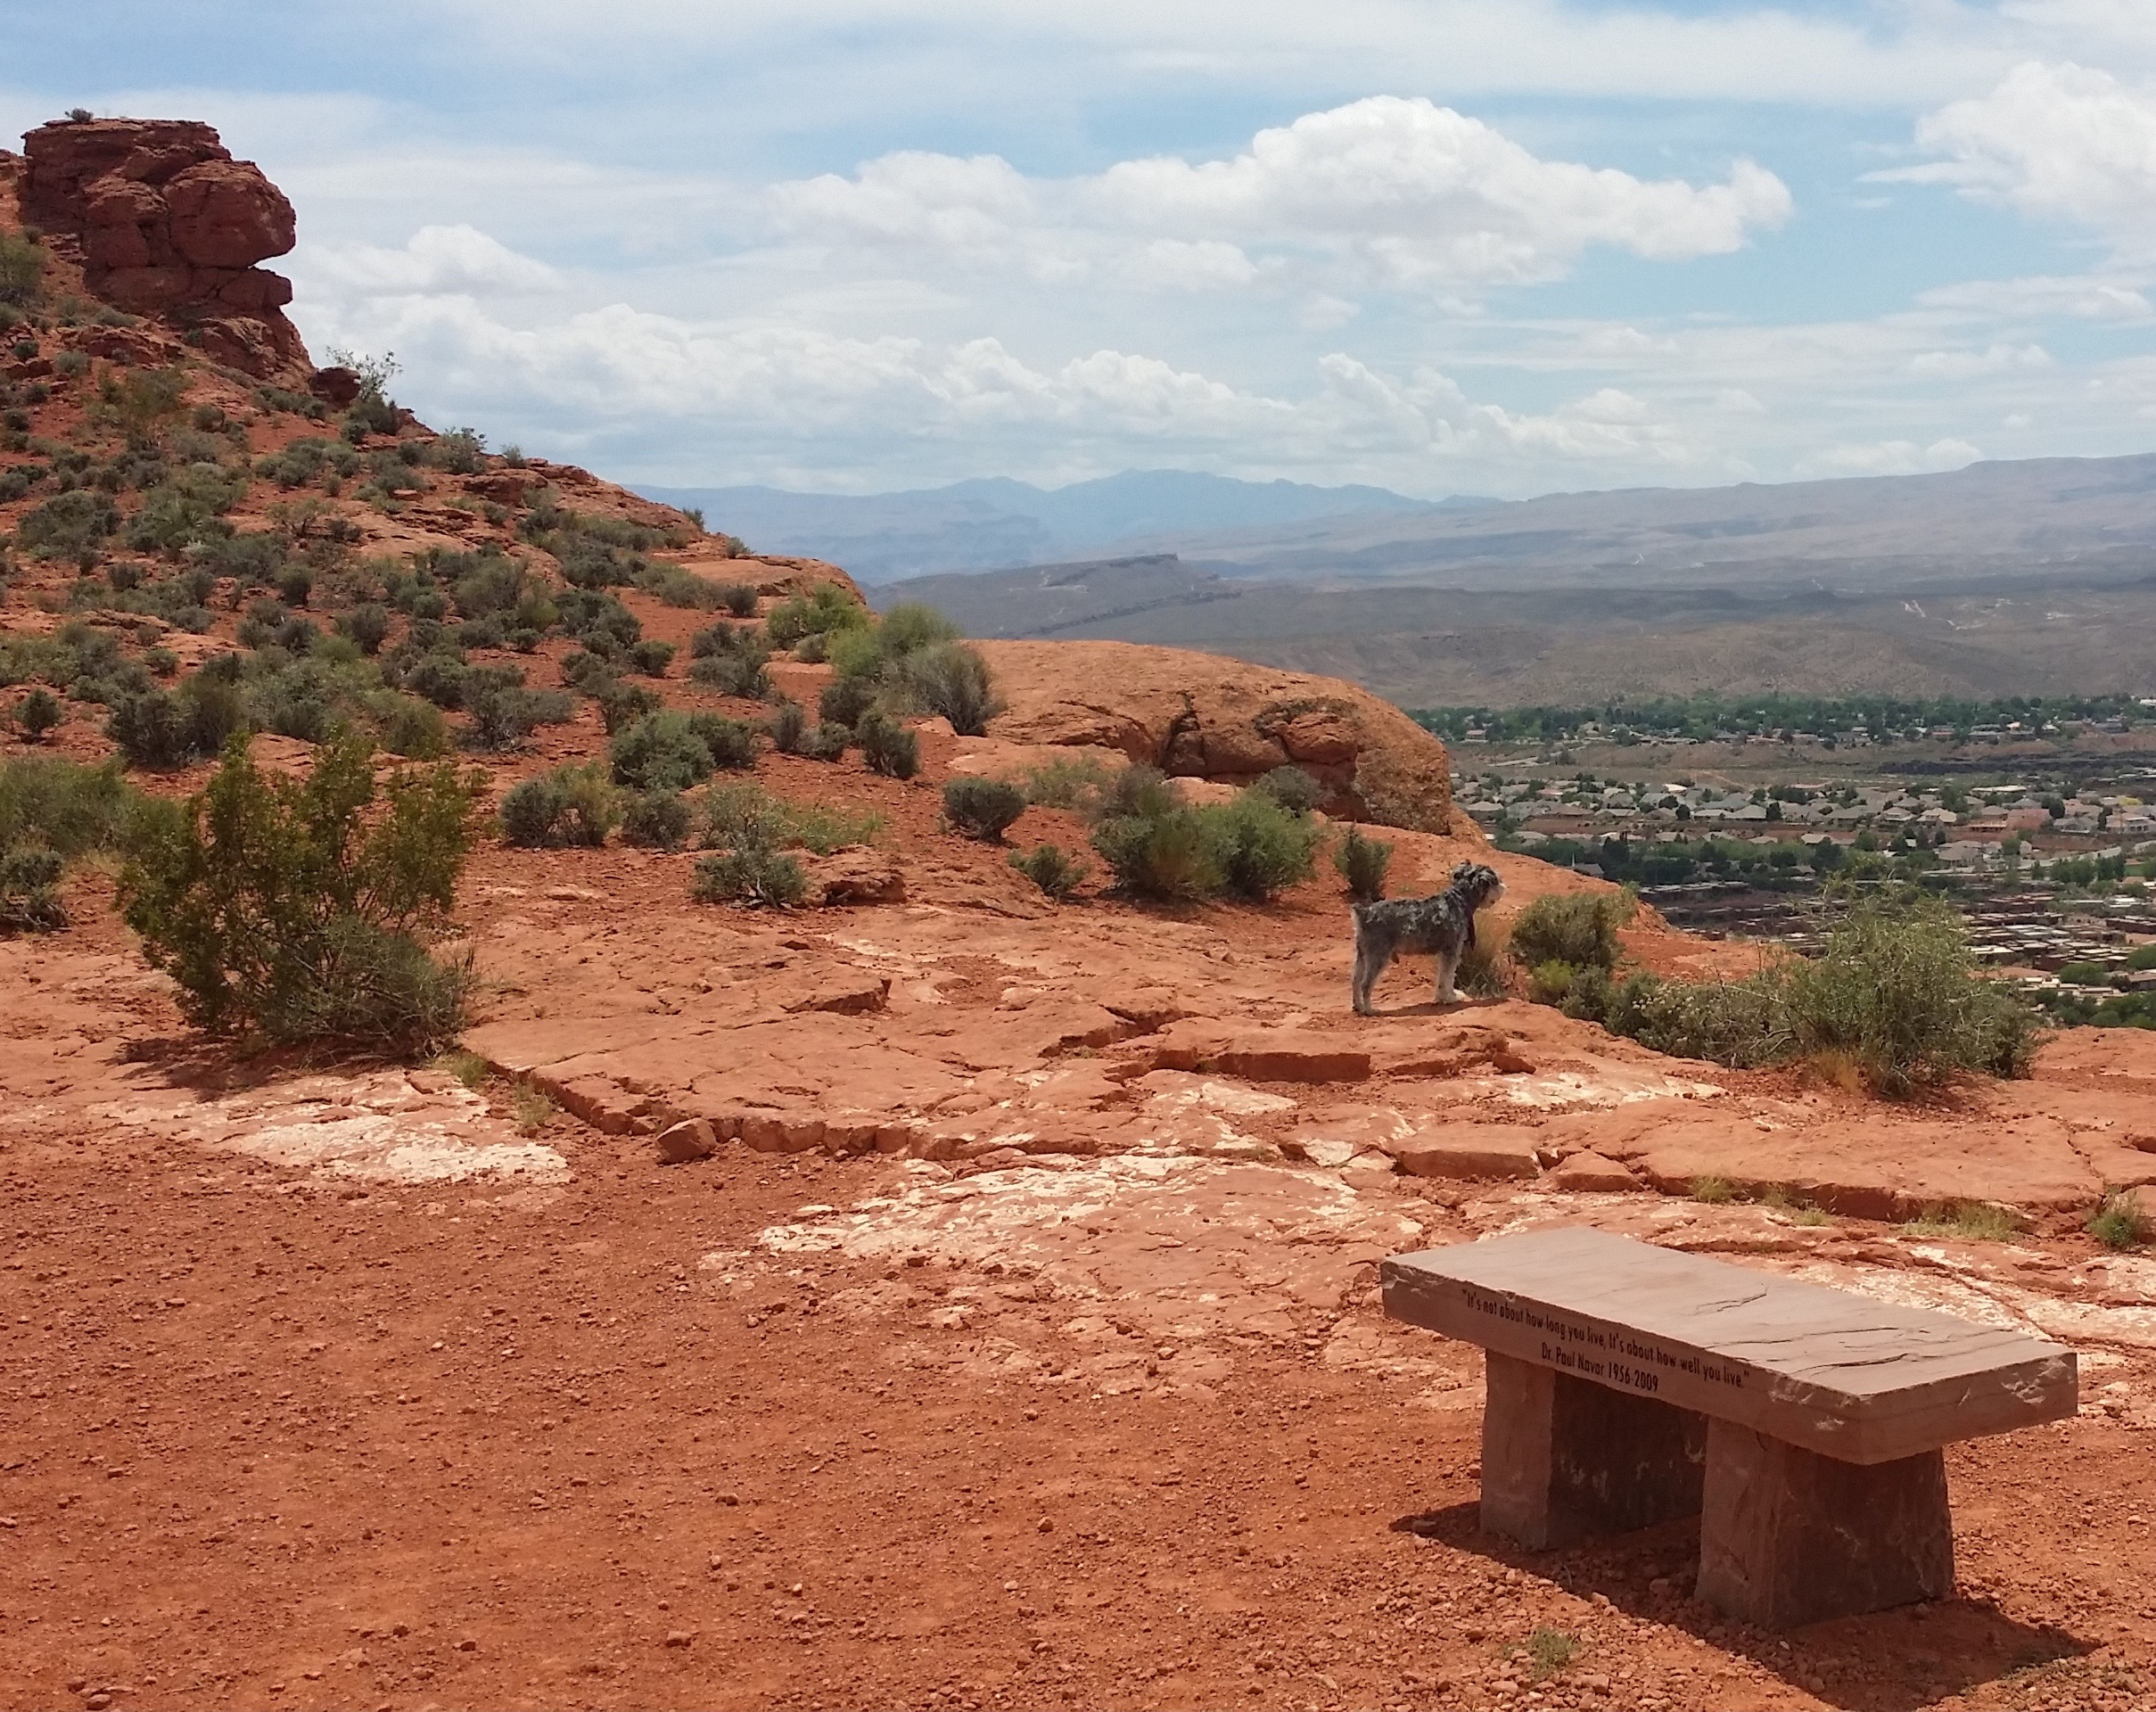 "Bench in memorial to Dr. Paul Navar on Paradise Rim, where he died of a heart attack, inscribed with one of his life-mottos: ""It's not about how long you live, it's about how well you live."" Red Cliffs National Recreation Area, Washington County, Utah, May 22, 2015 